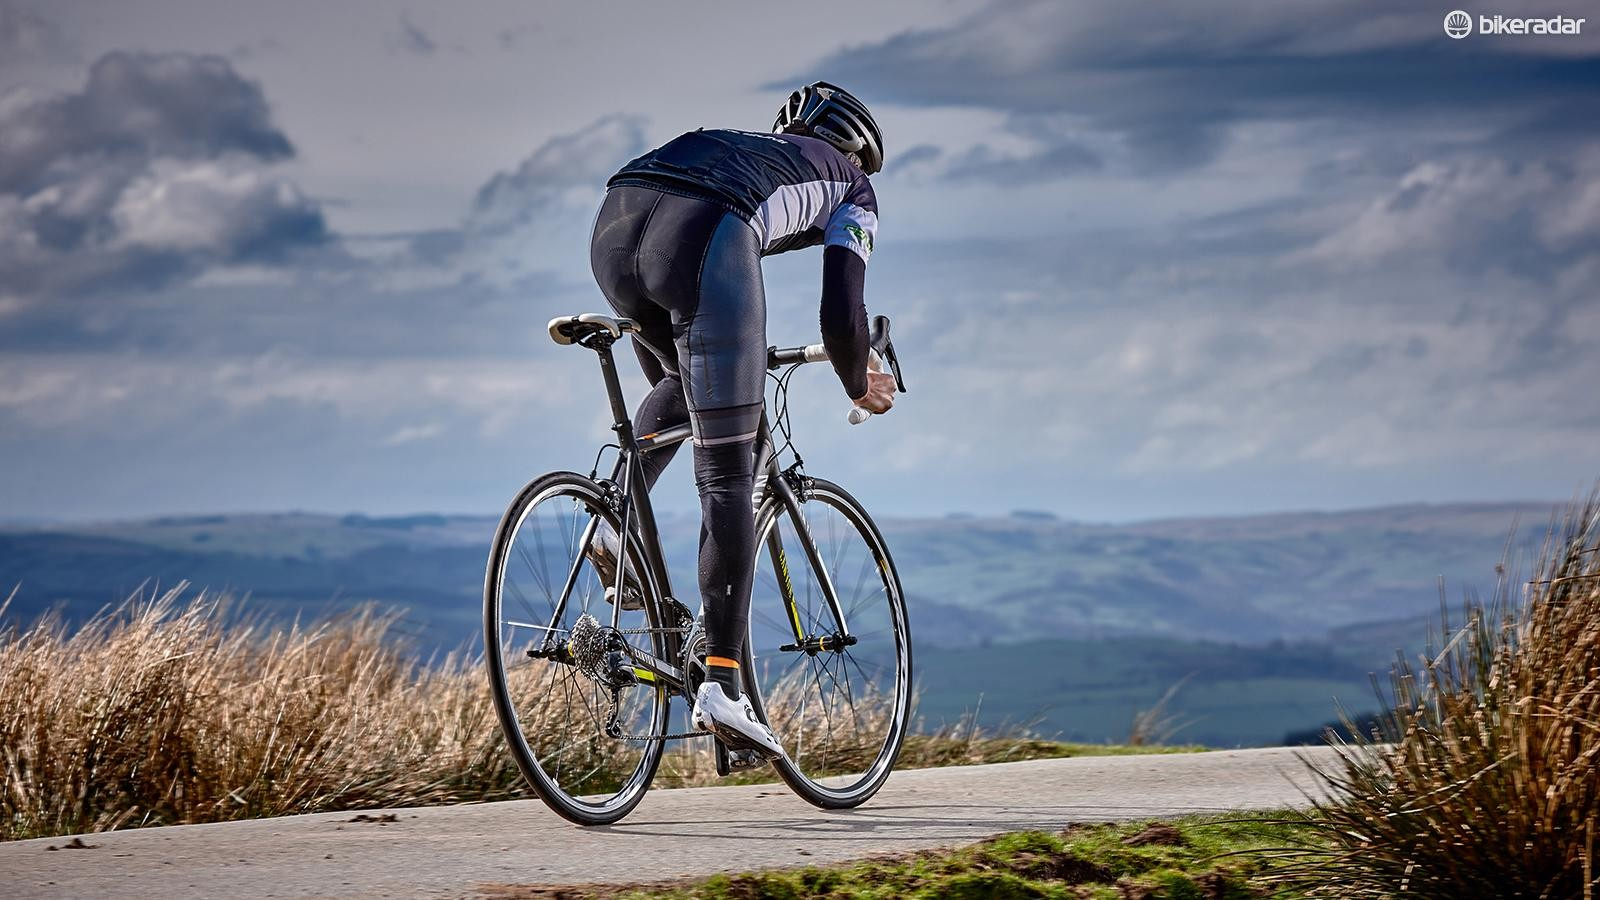 The Canyon Endurace AL 6.0 is still exceptional bike for the money